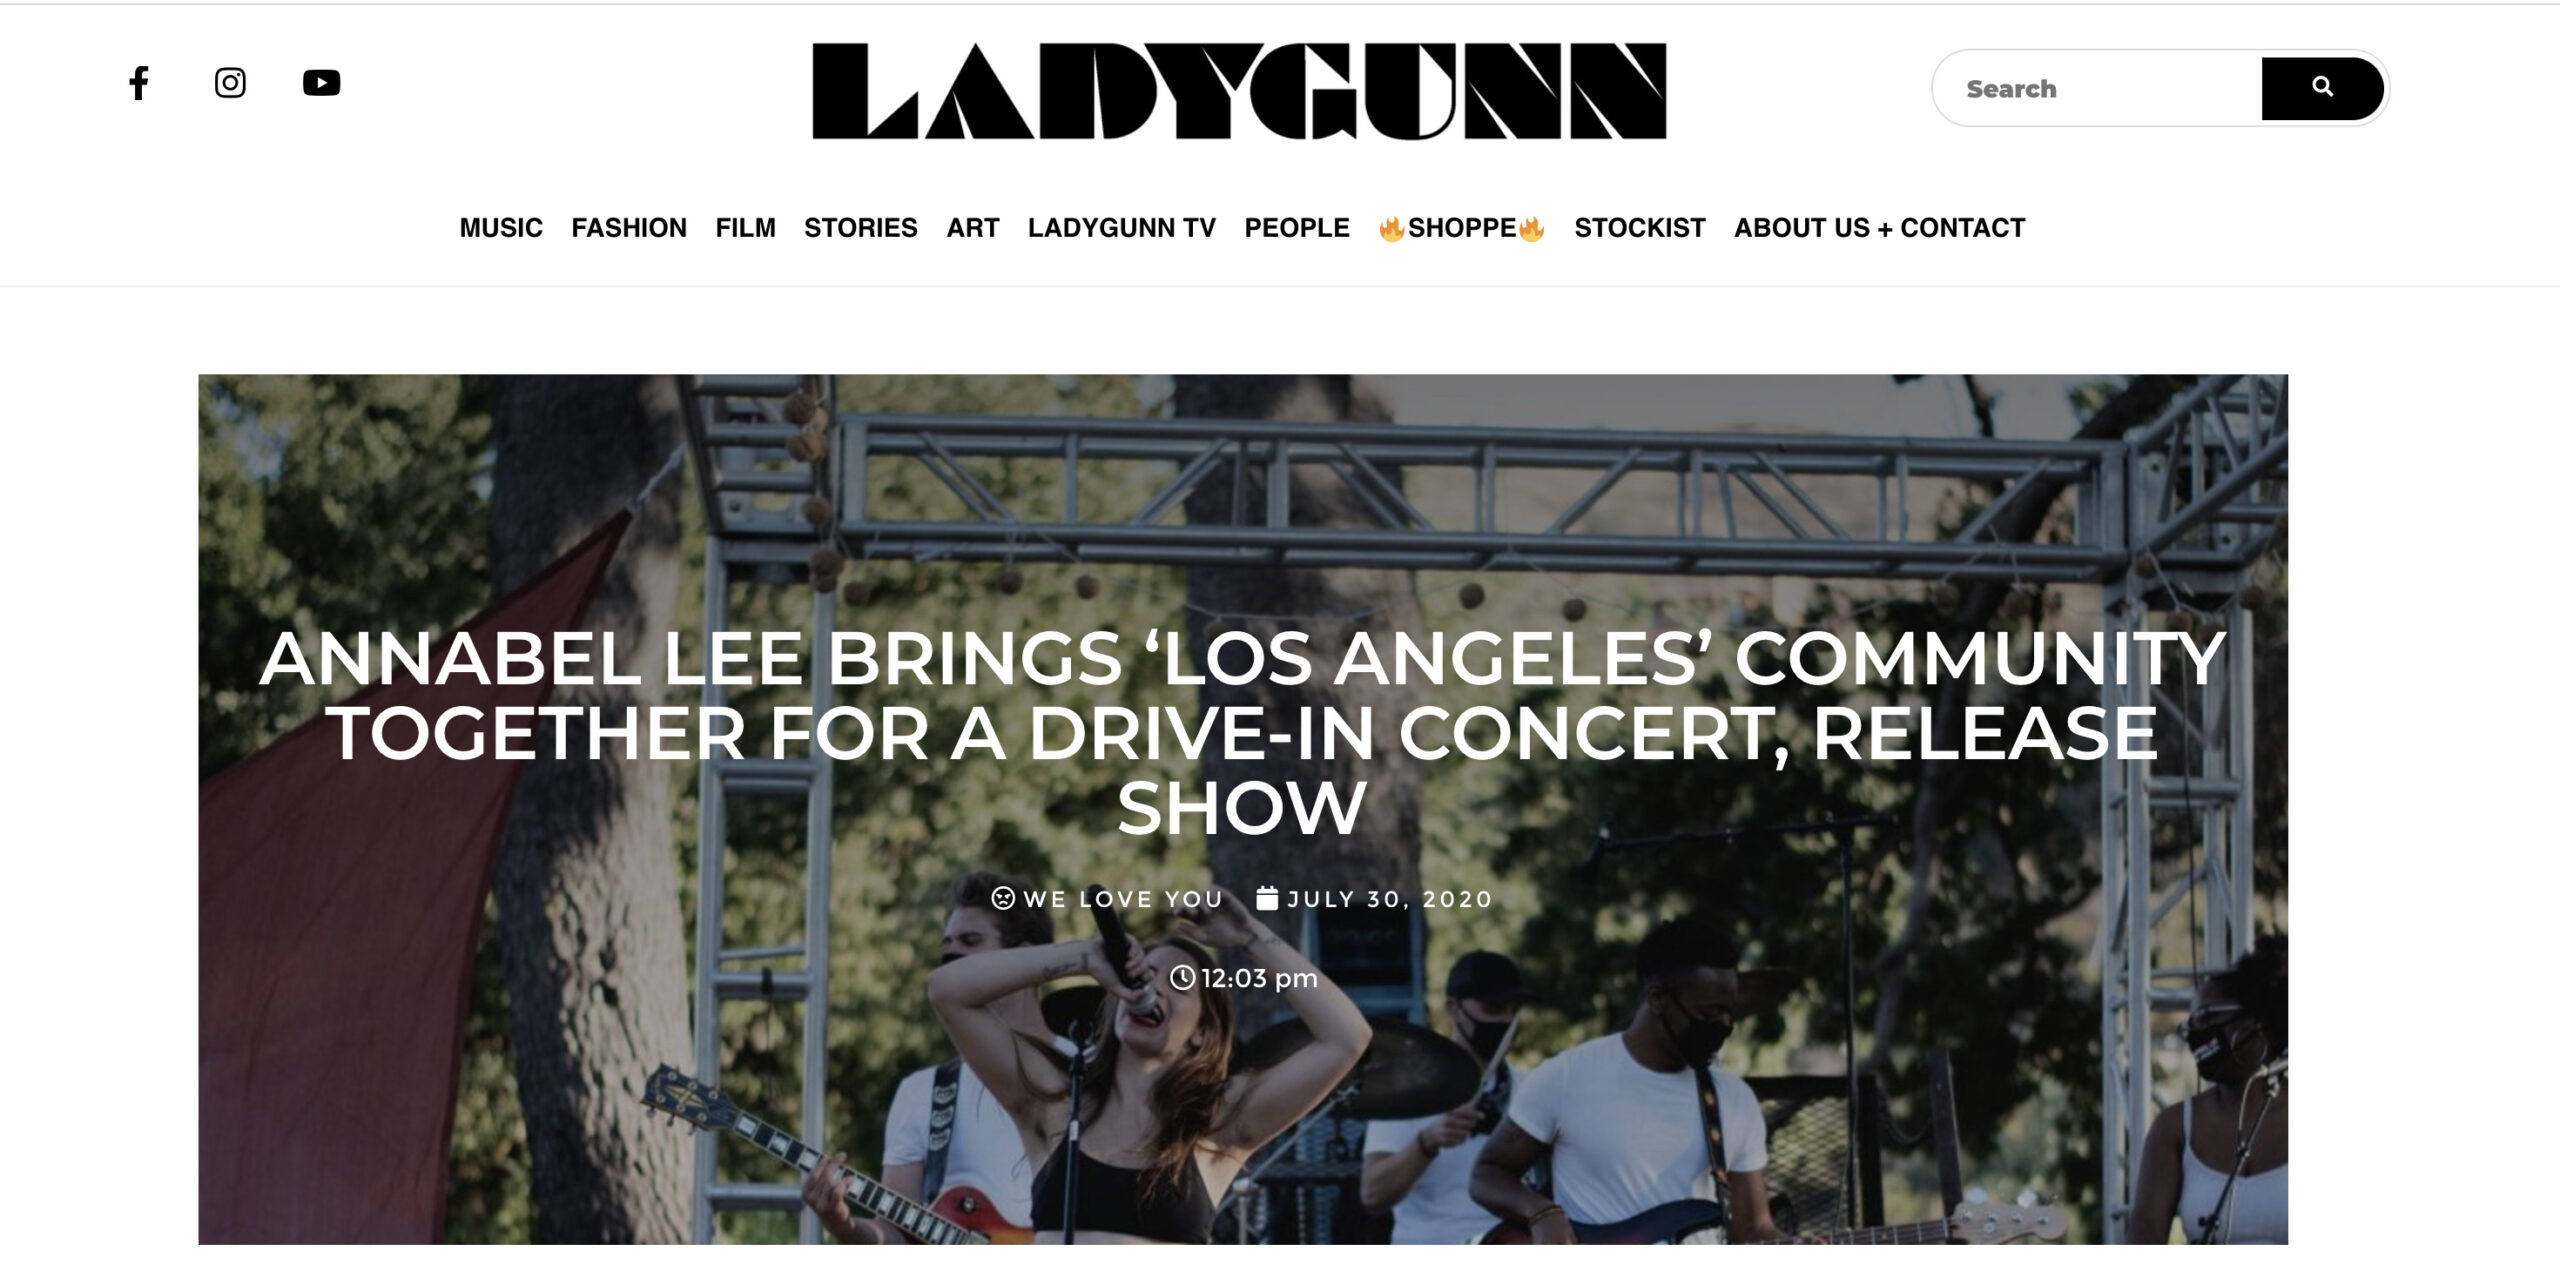 header image of Ladygunn review of Annabel Lee's drive-in concert